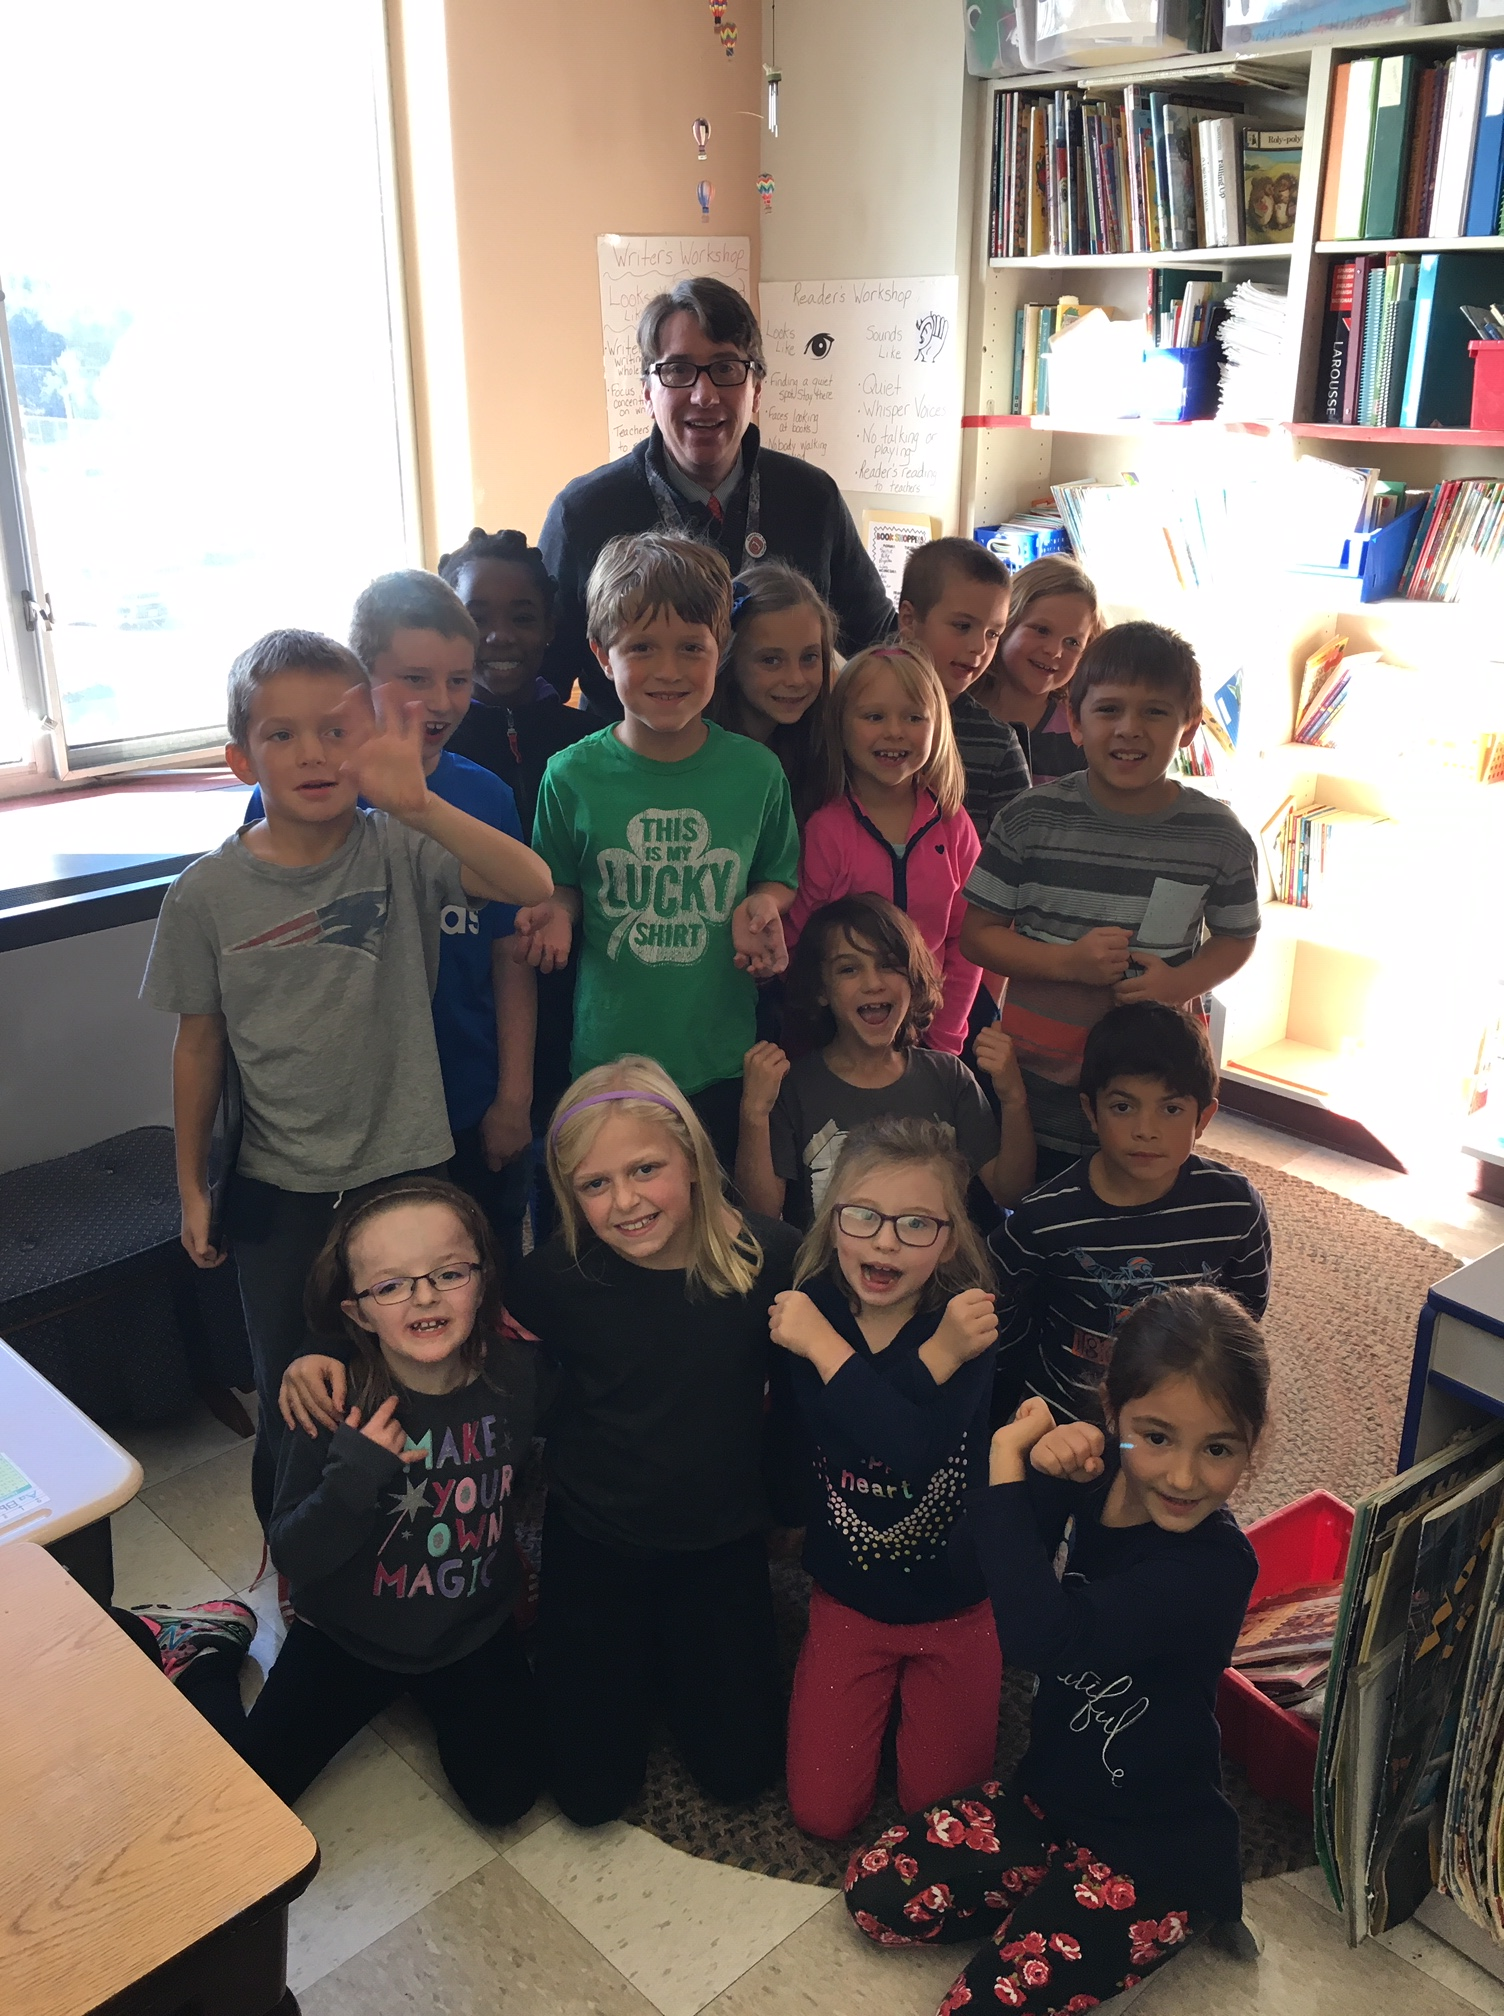 BFA Fairfax Elementary Principal Tom Walsh poses with classroom of students